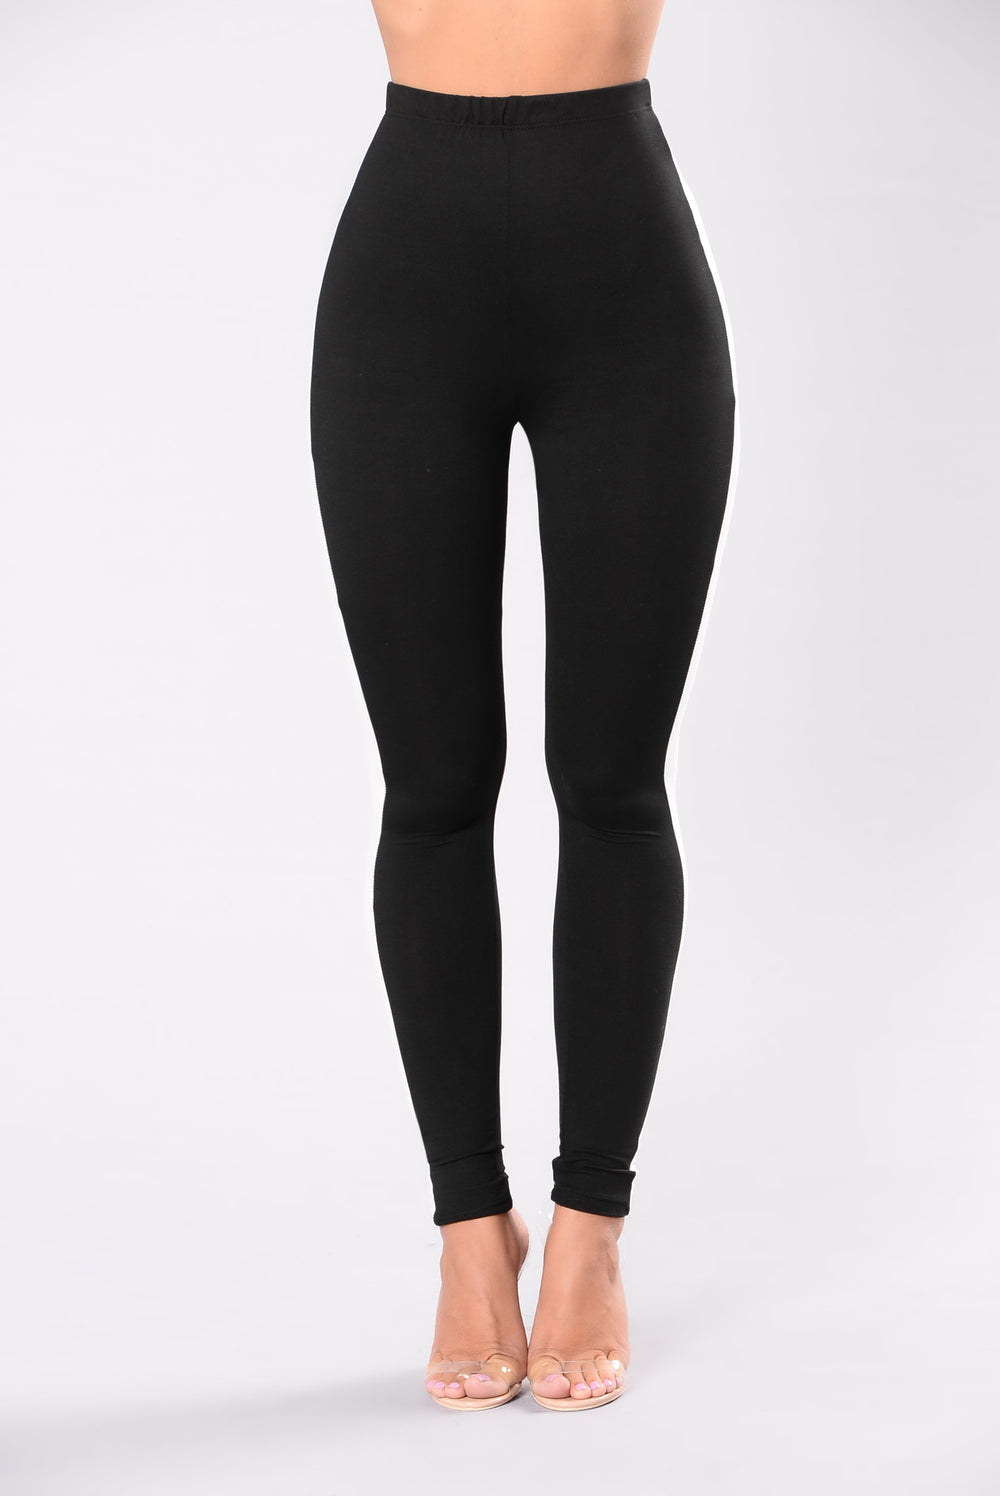 form fit leggings for women in black and white